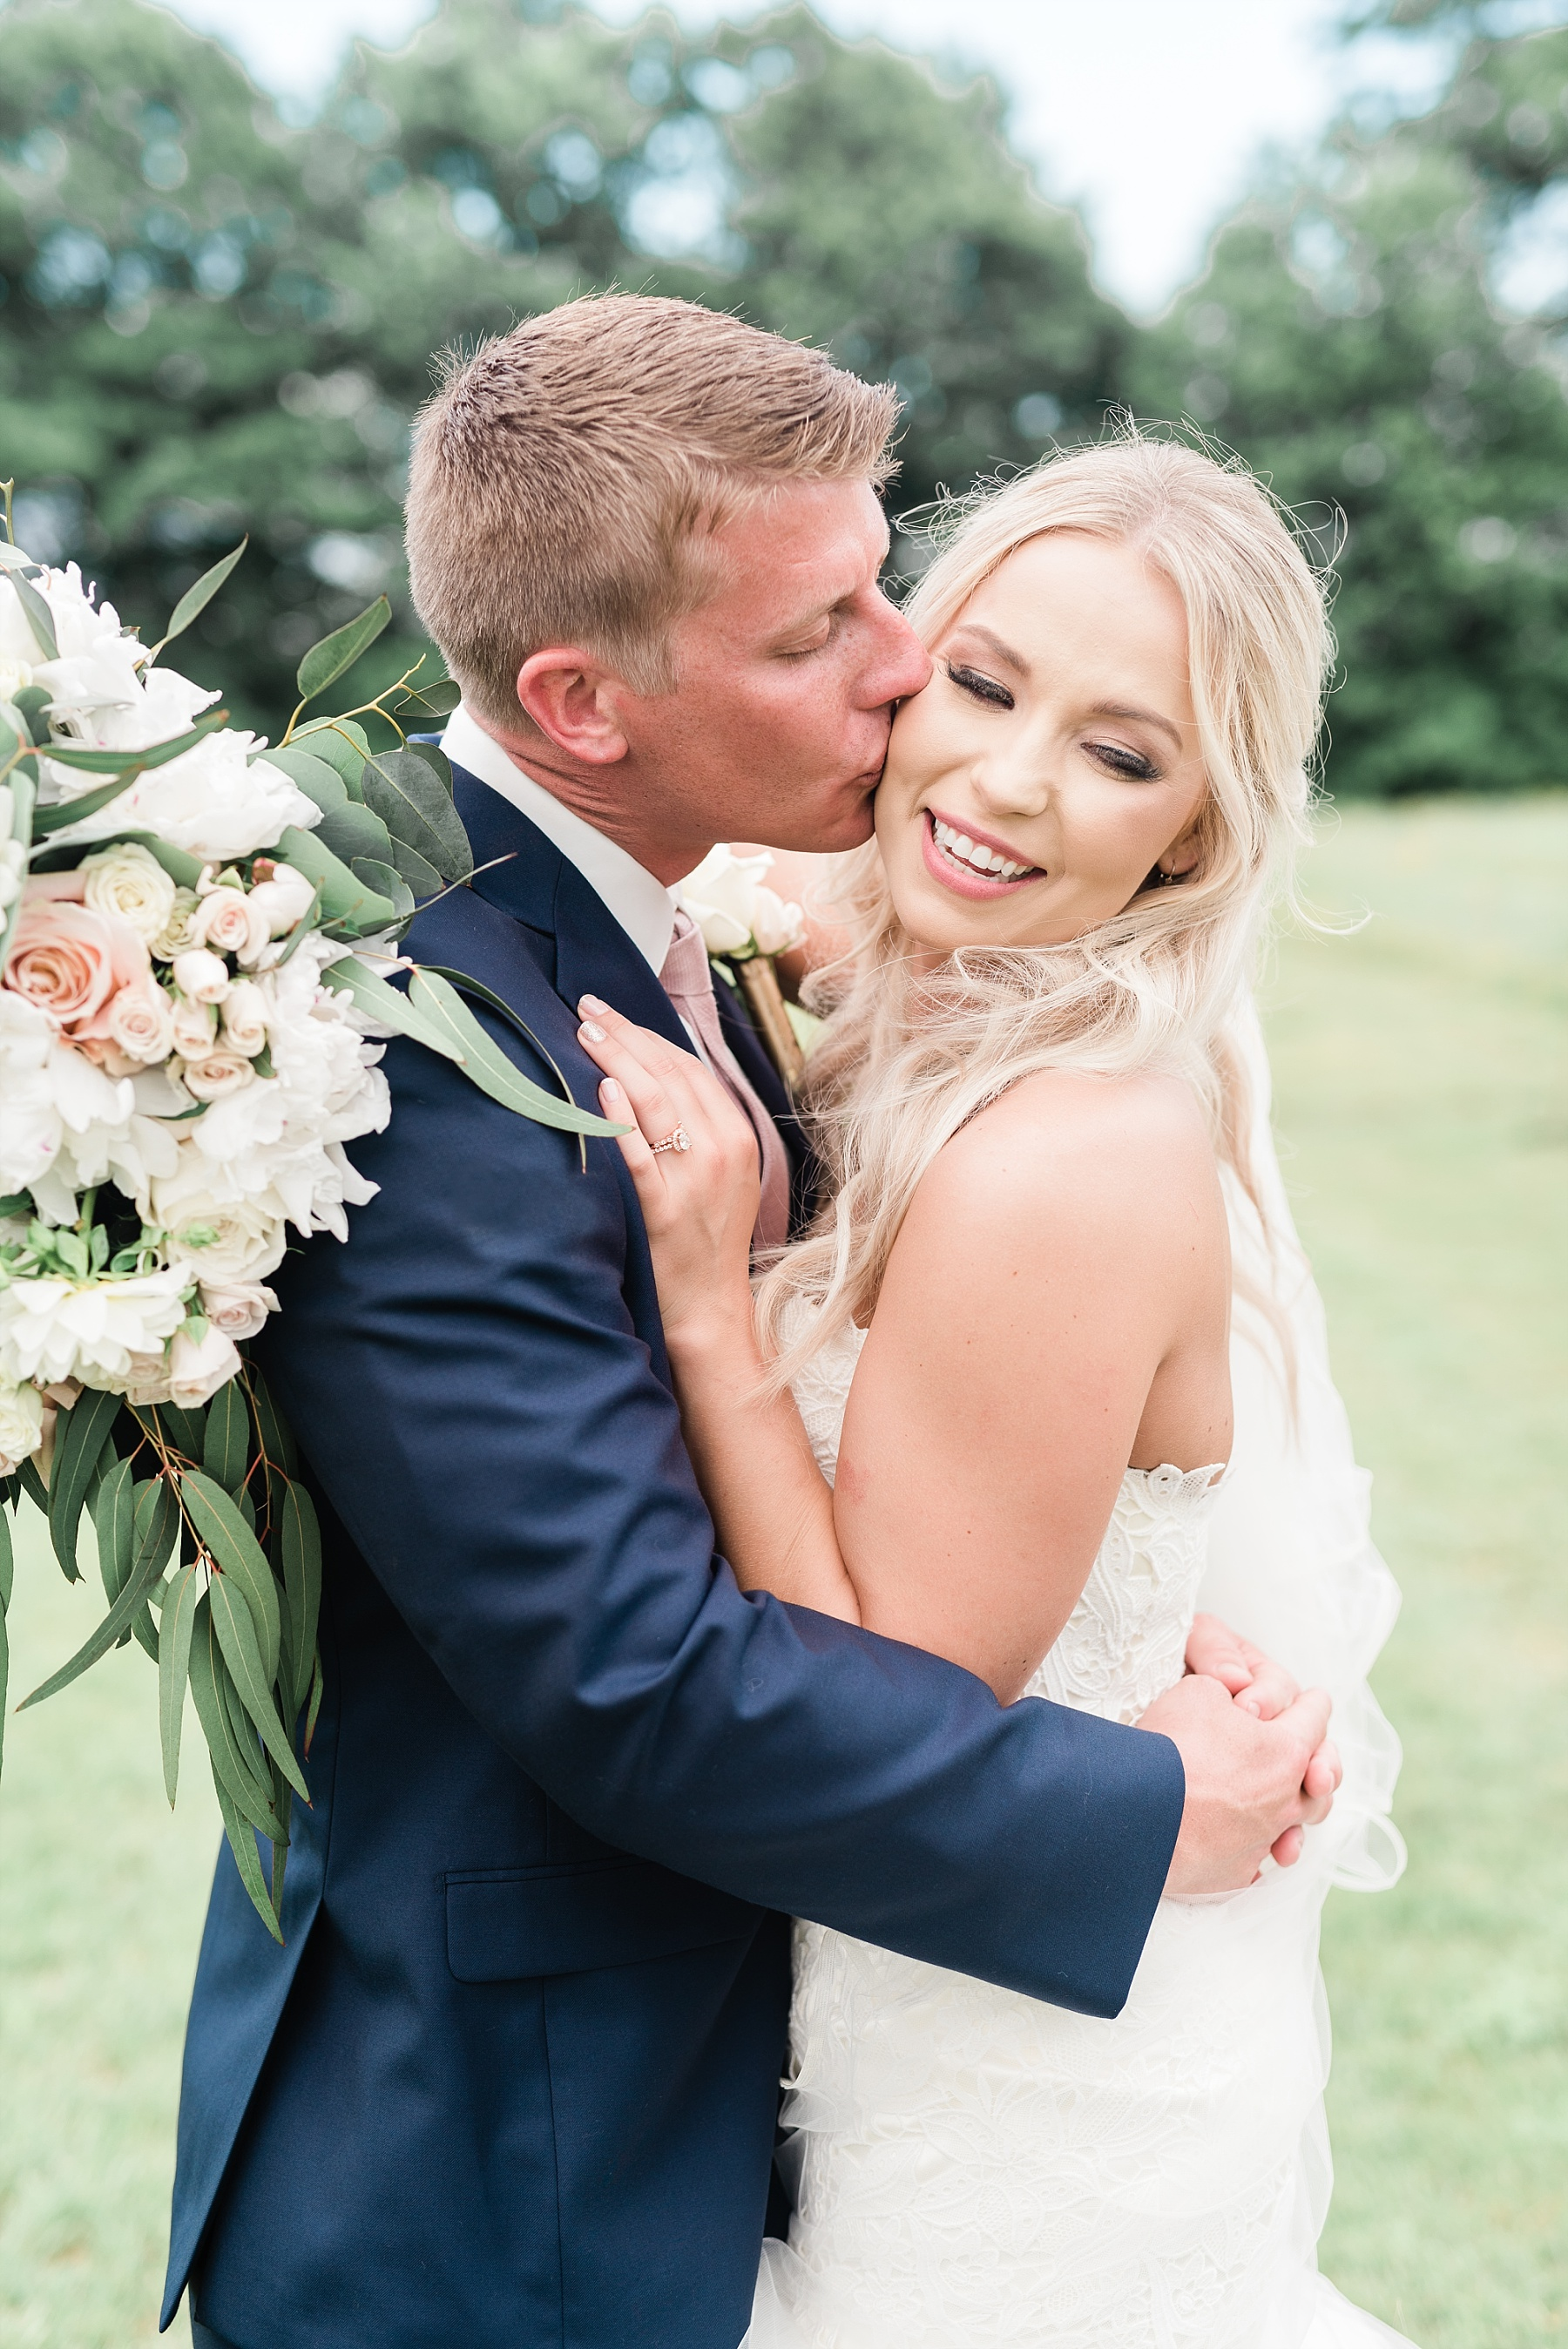 Cody and Mariah Dudenhoeffer Wedding at Emerson Fields Venue by Kelsi Kliethermes Photography_0071.jpg